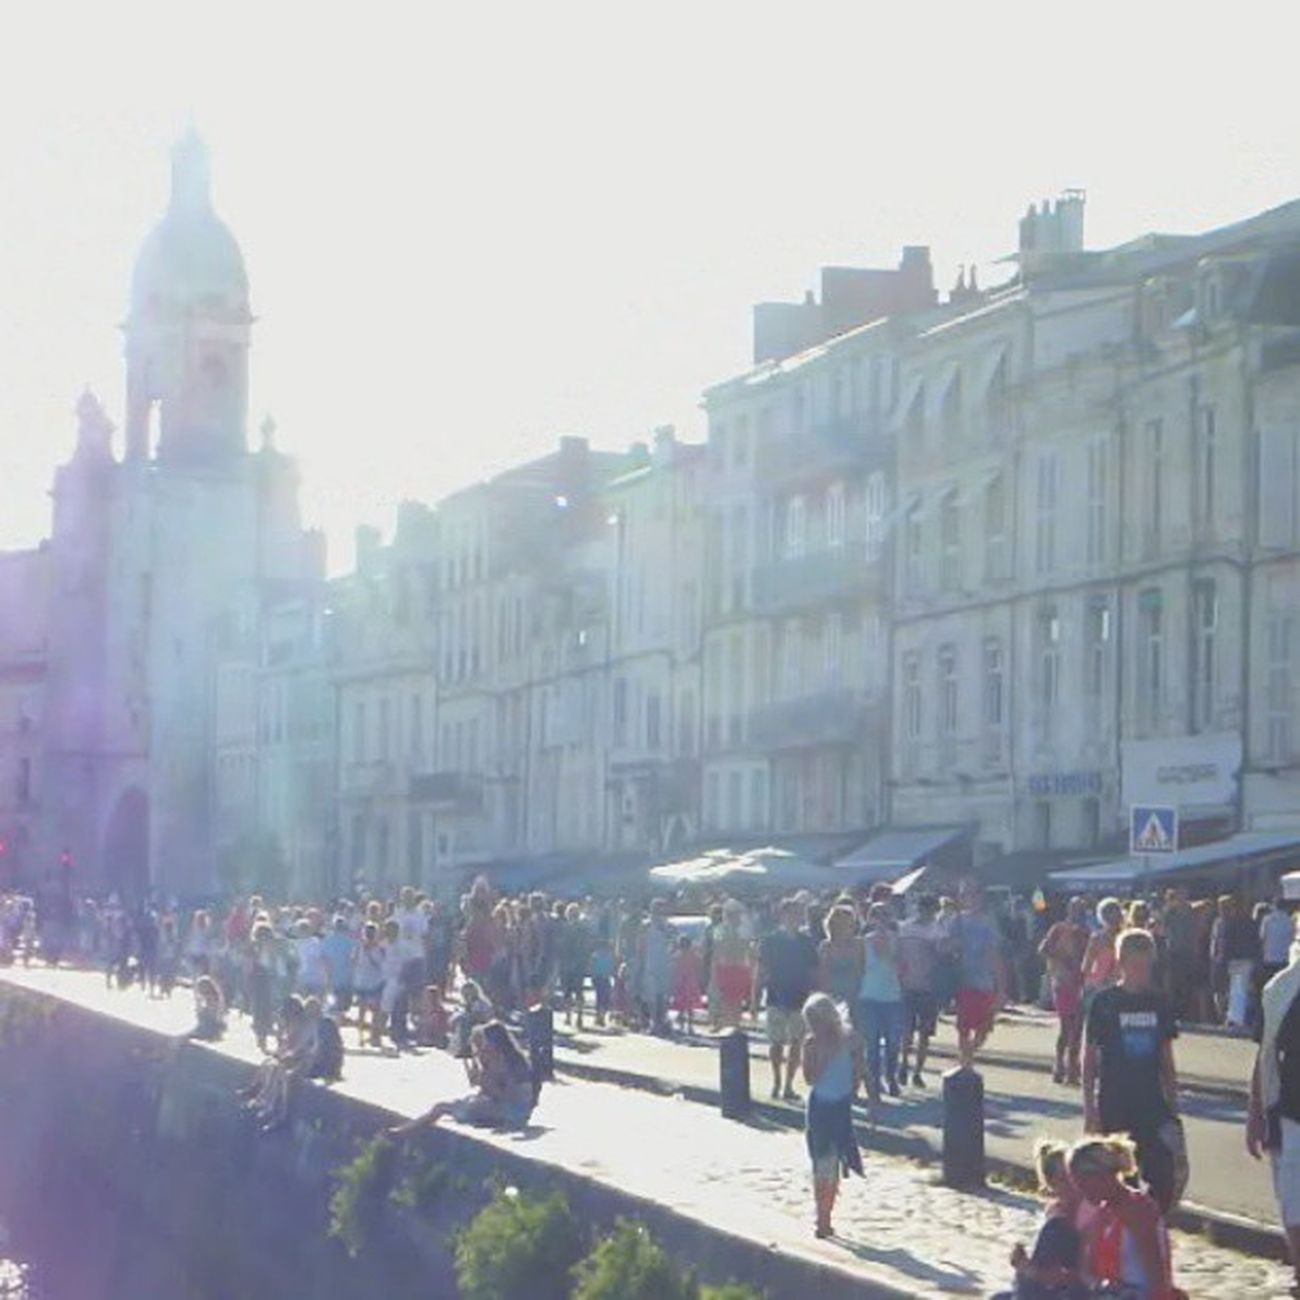 Walking in #larochelle Videogramoftheday Insta_pick_video Larochelle Gi_video Videoclip Hubvideo Videoinstagram Global_views_videoshot Instagramvideo Videogram Igvideo Instavideo Igersfrancevideo Worldvideos Insta_globalvideo Tribegram_video Perfectvideo Videooftheday Myfirstvideo